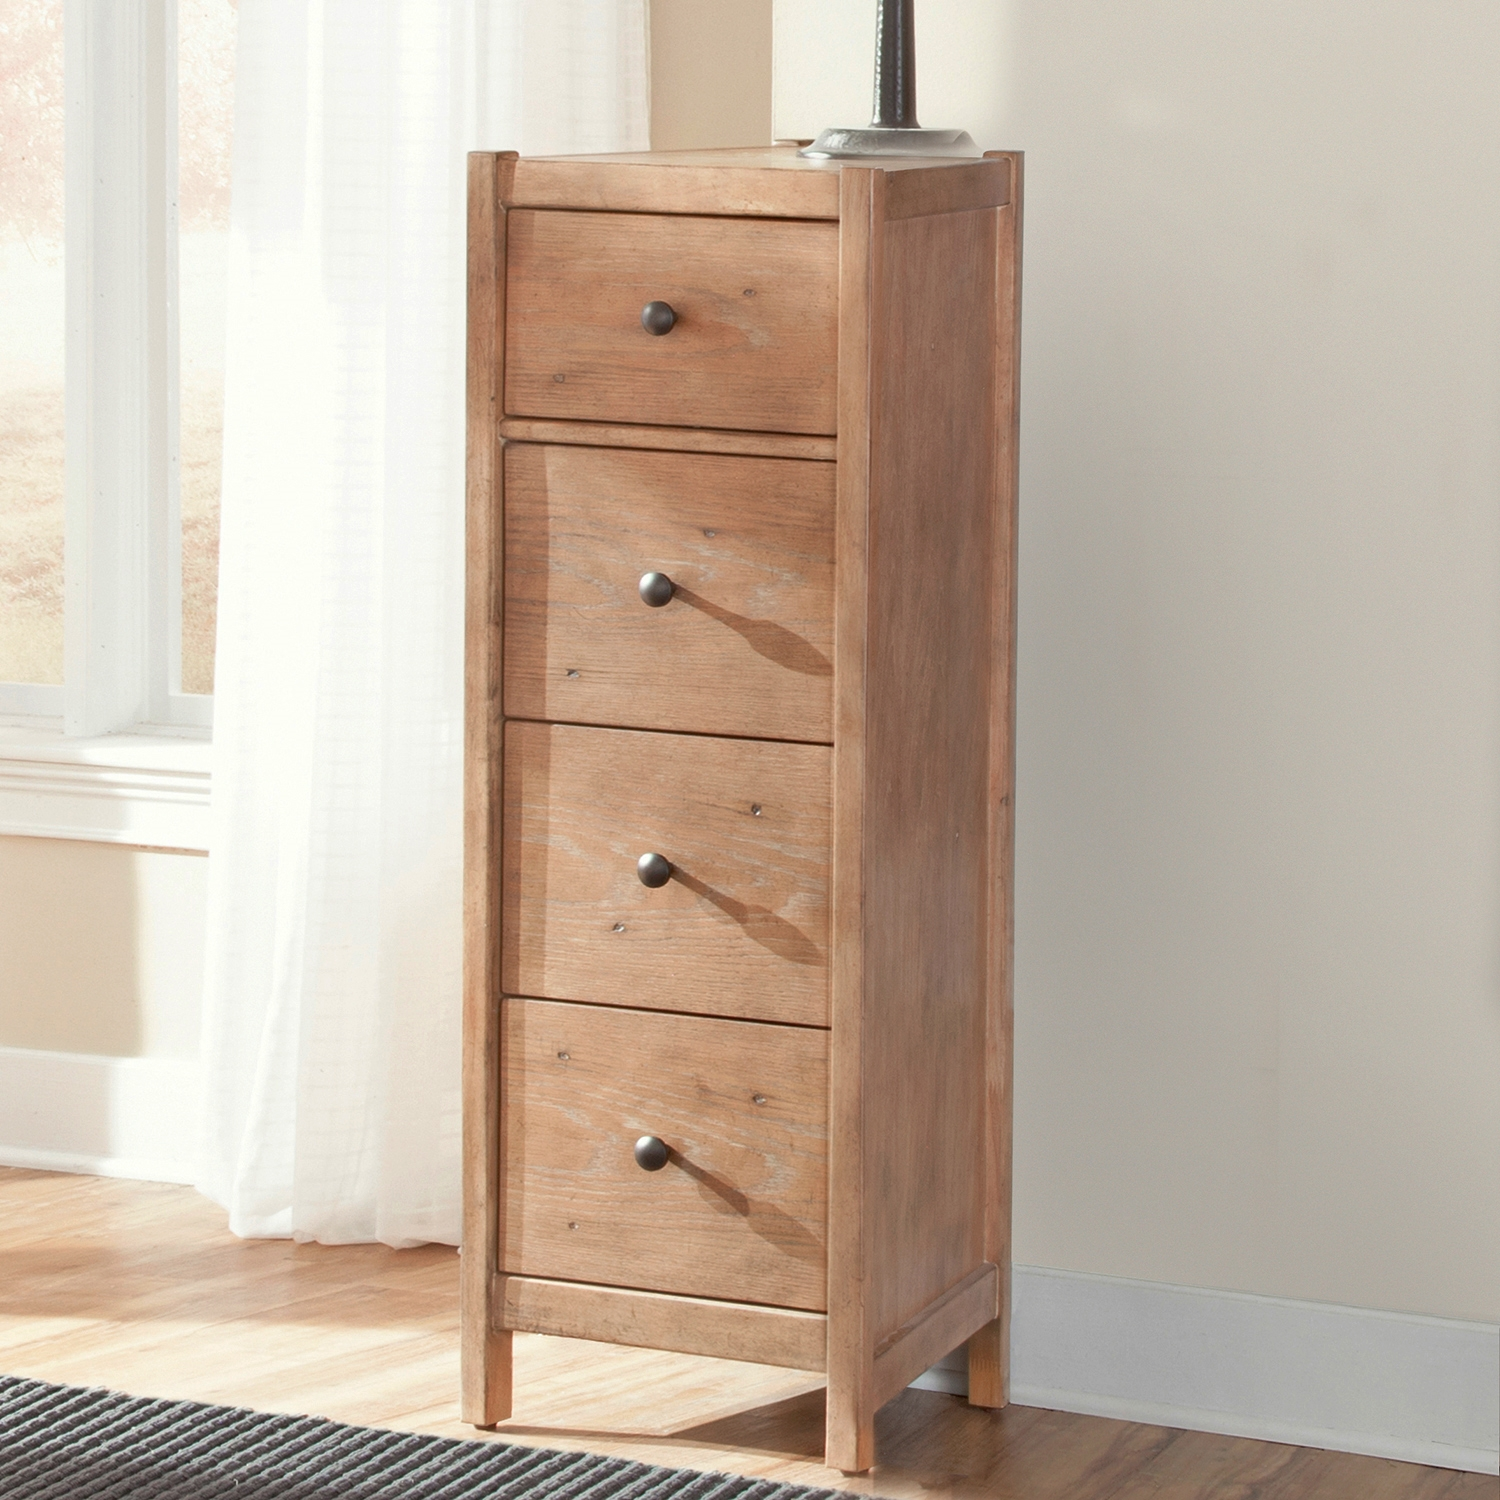 Natural Elements Pier Nightstand in Soft Driftwood with Off-White Glaze - AW-1000-142